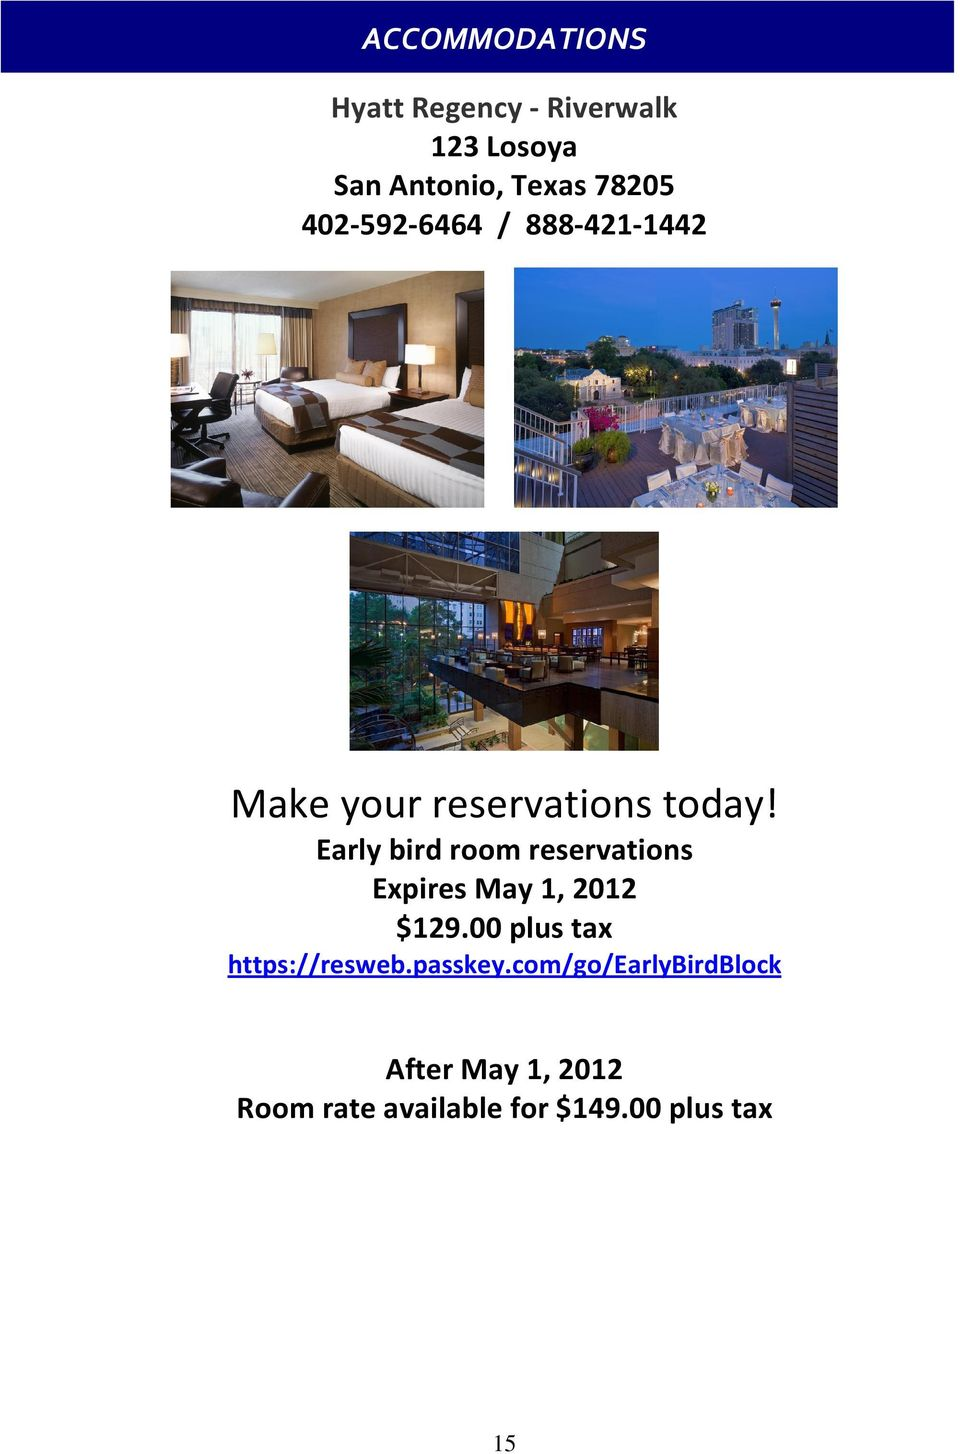 Early bird room reservations Expires May 1, 2012 $129.